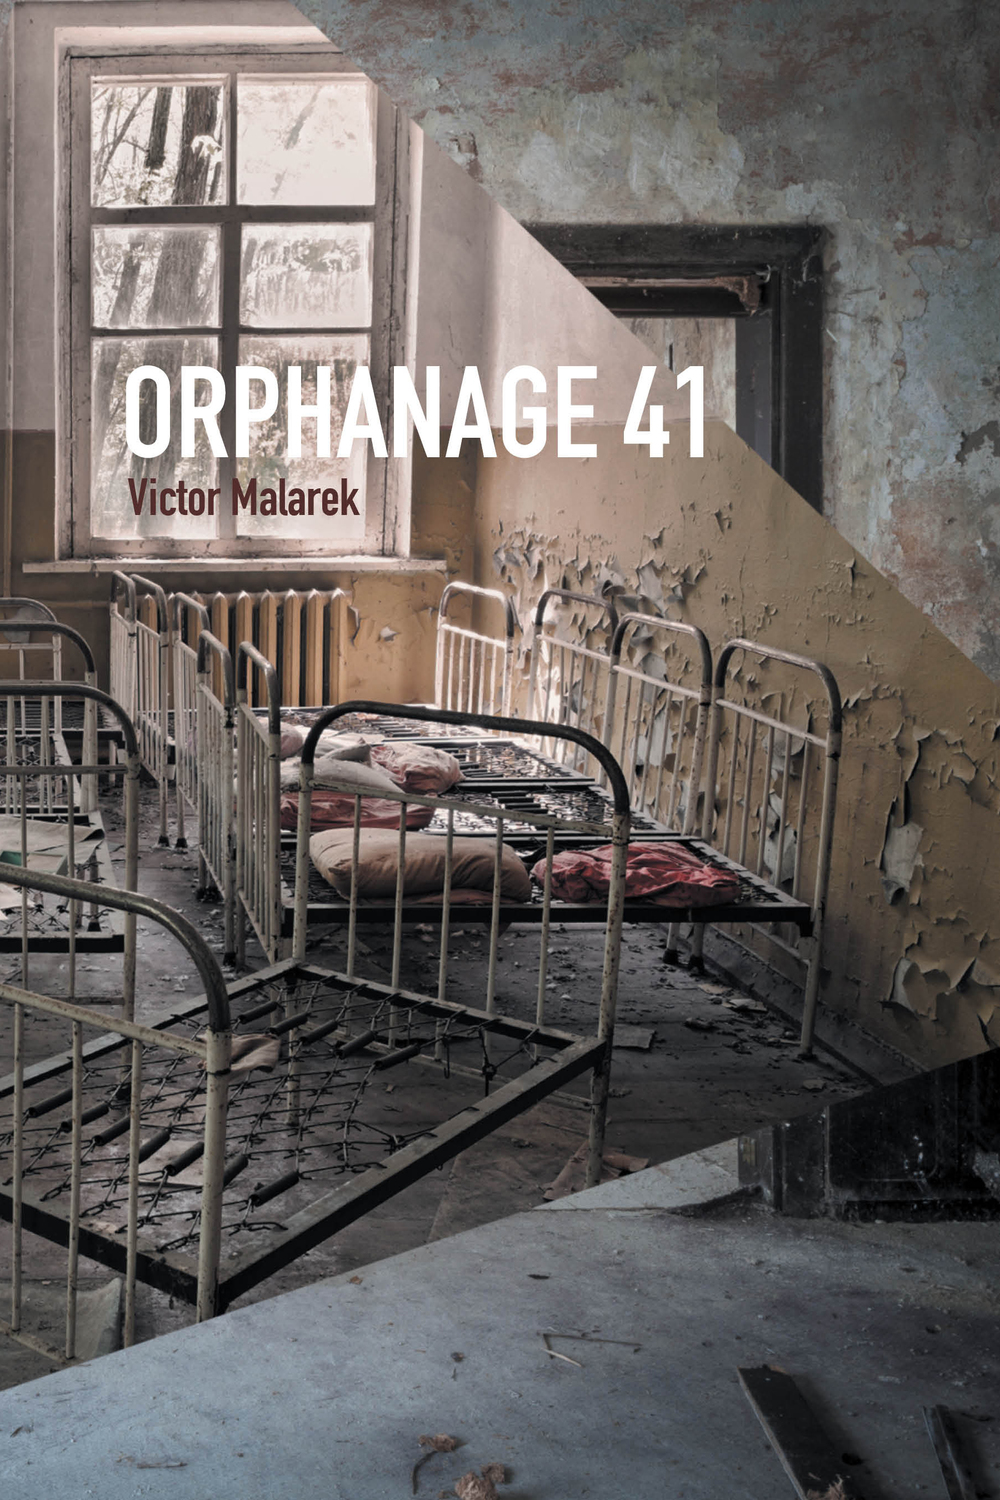 Victor Malarek, author of Orphanage 41